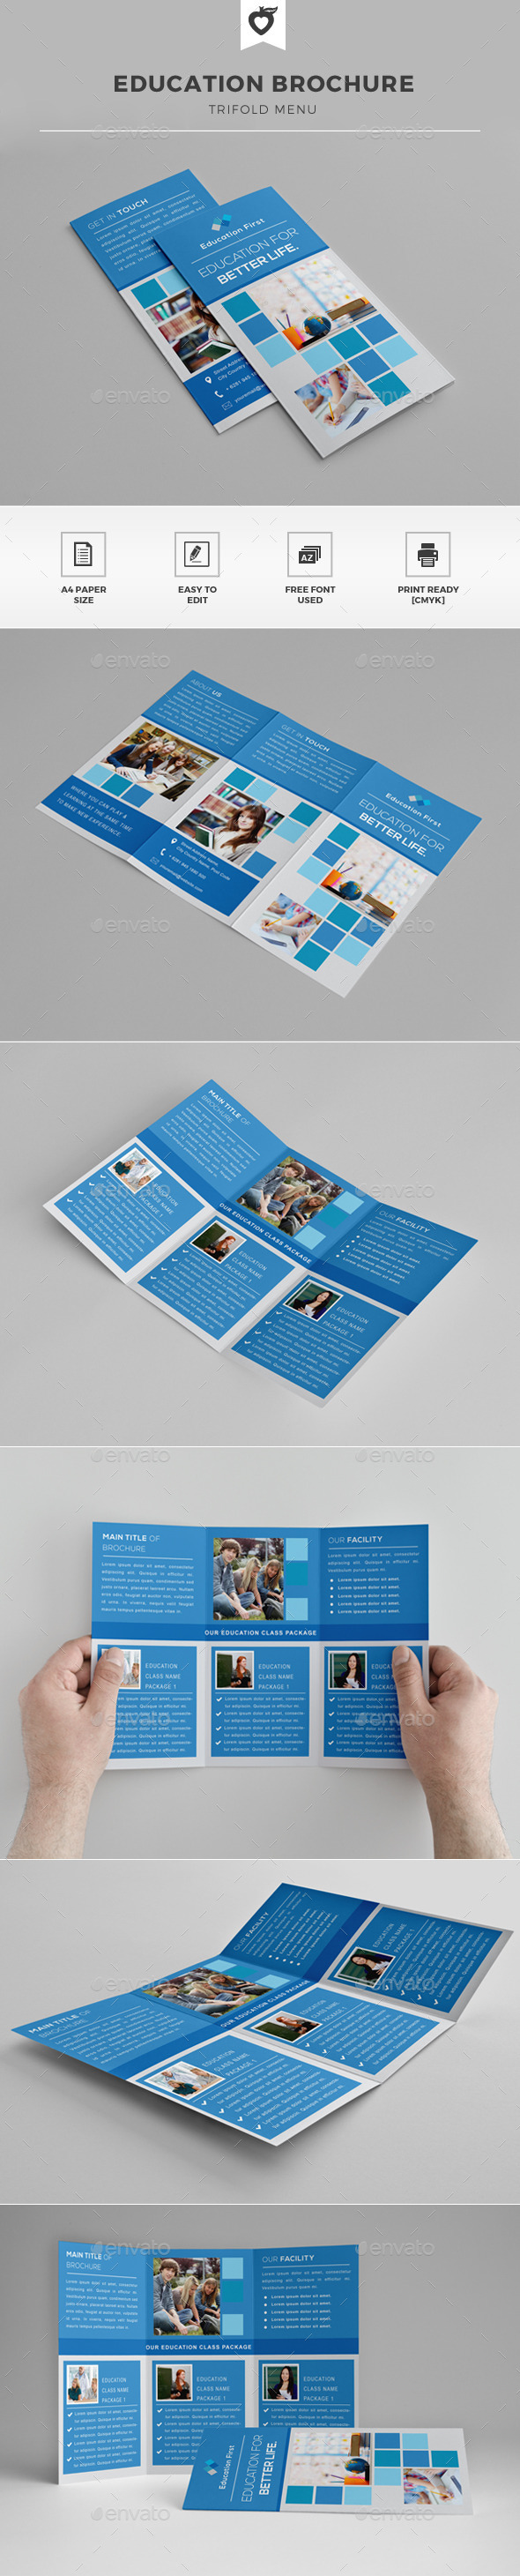 Education Trifold Brochure - Corporate Brochures